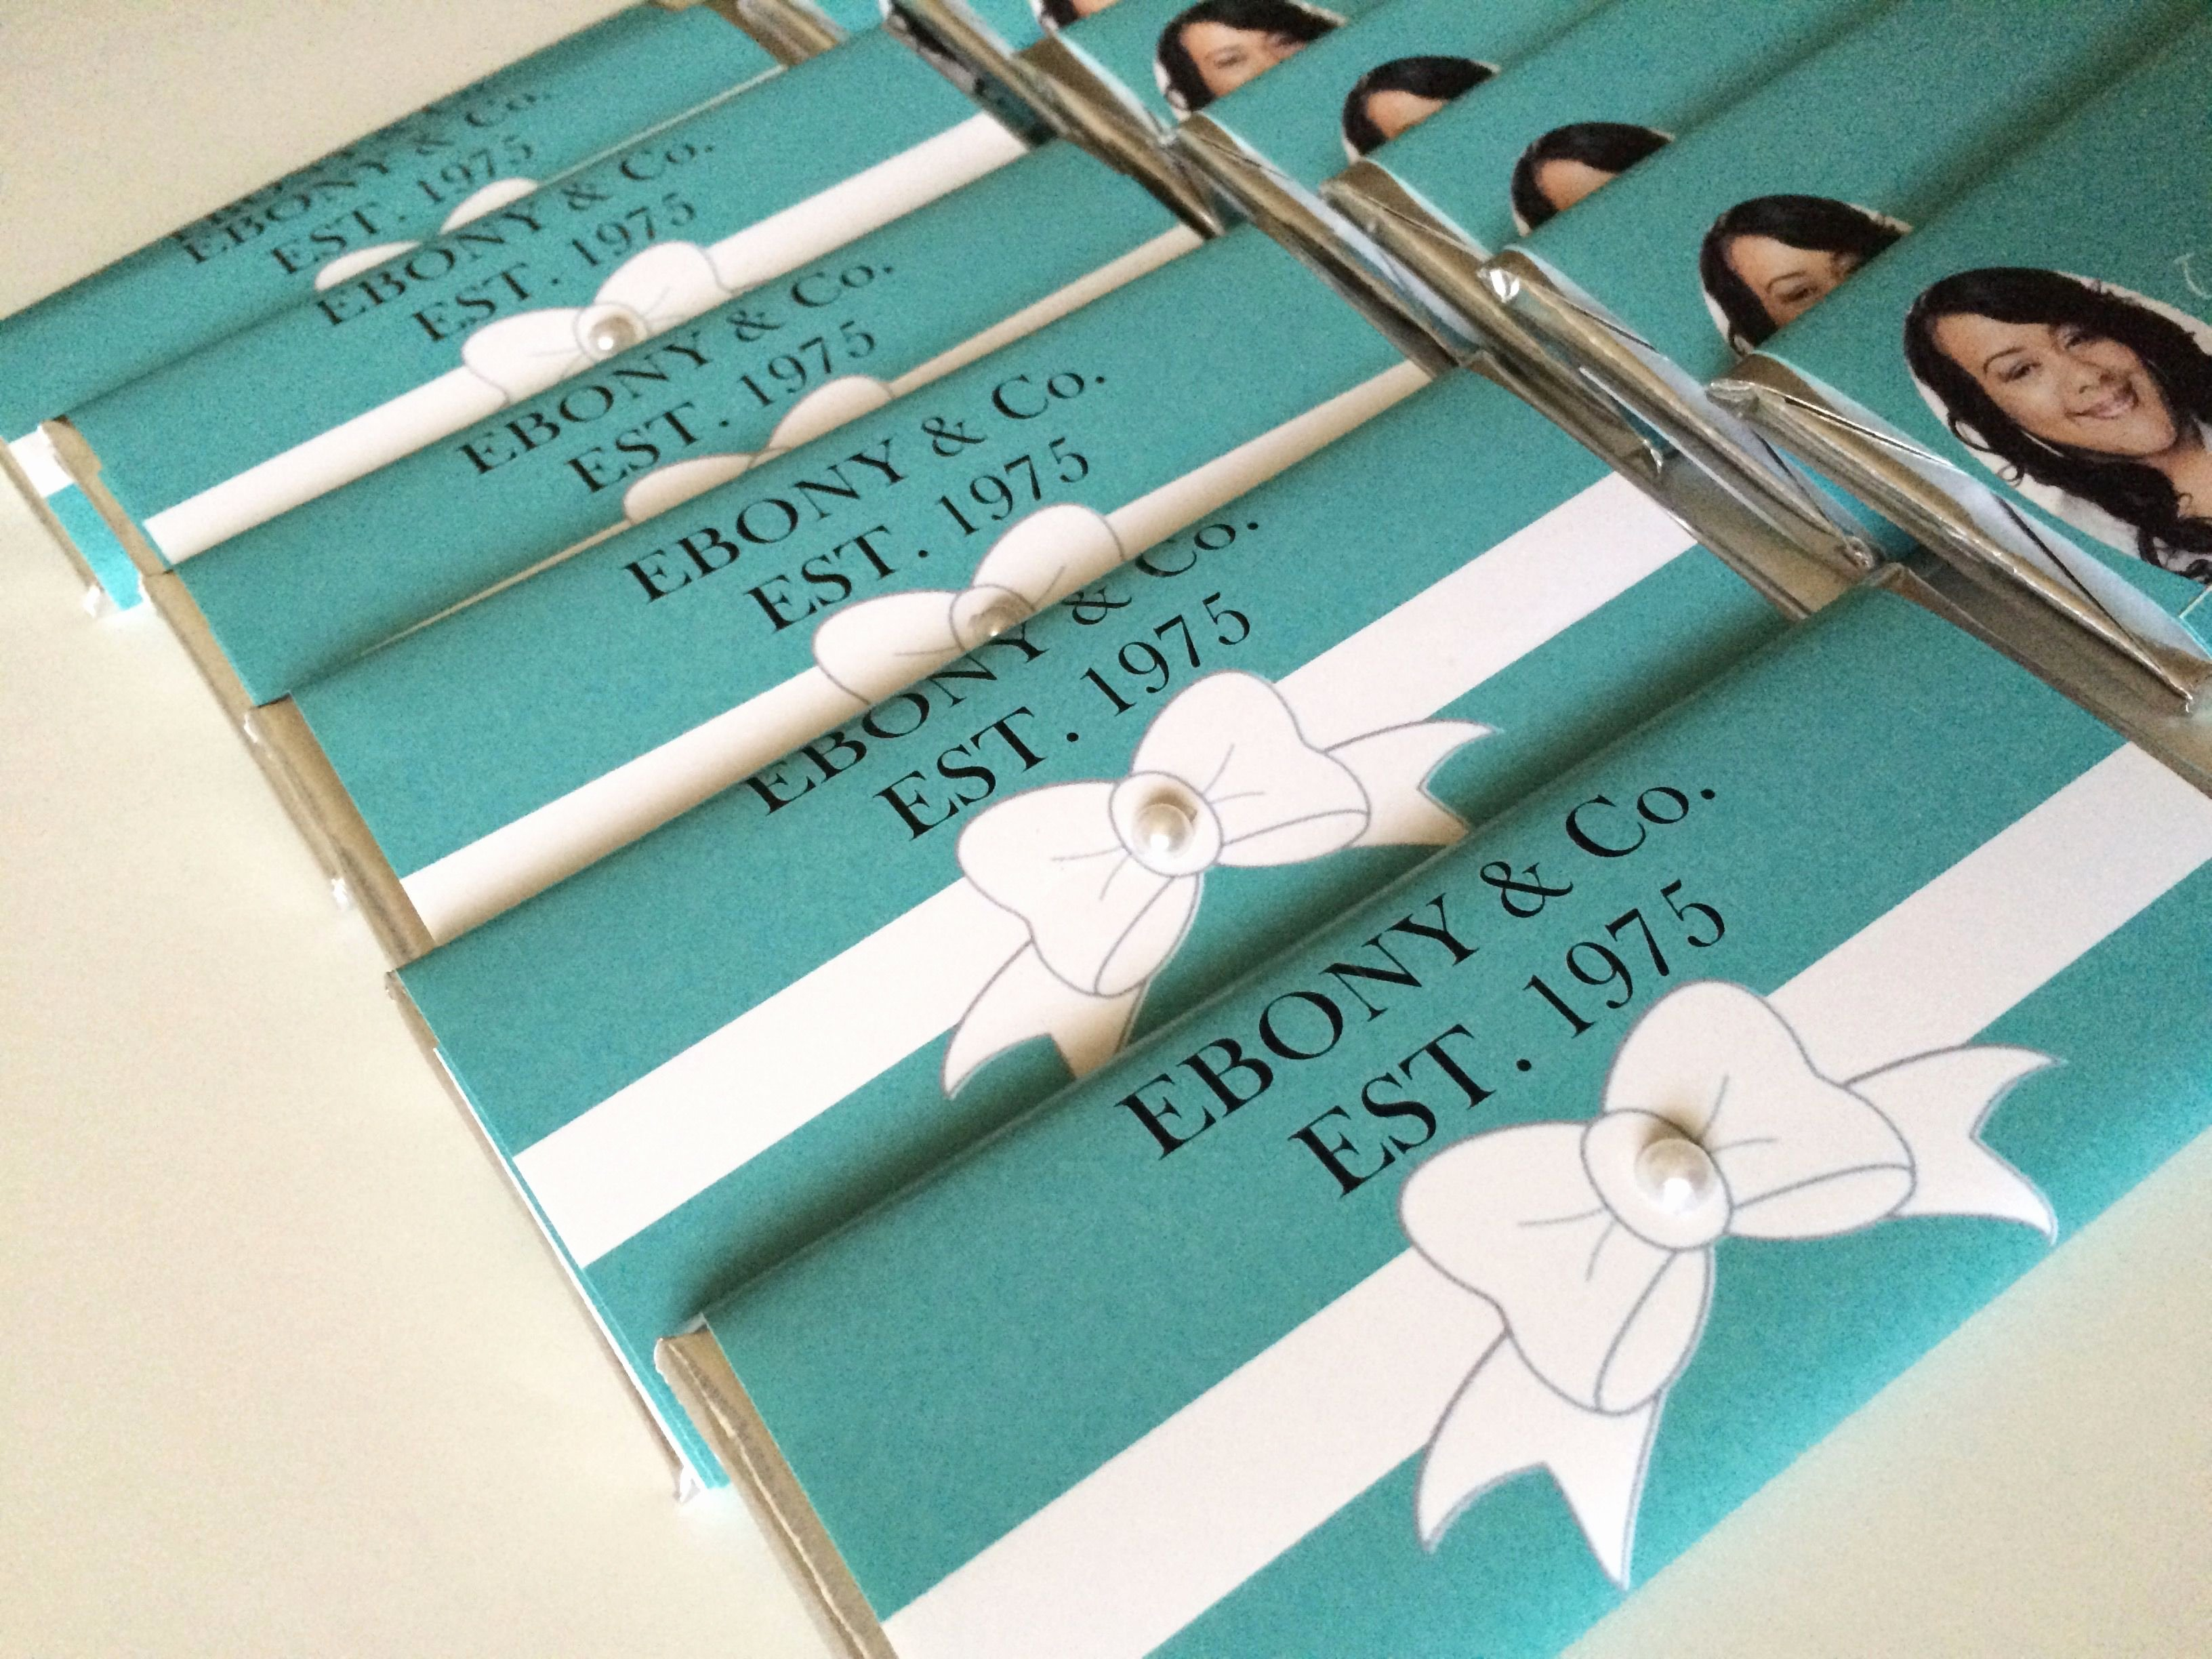 Personalized Candy Wrapper Template New Tiffany & Co Personalized Candy Bar Wrappers